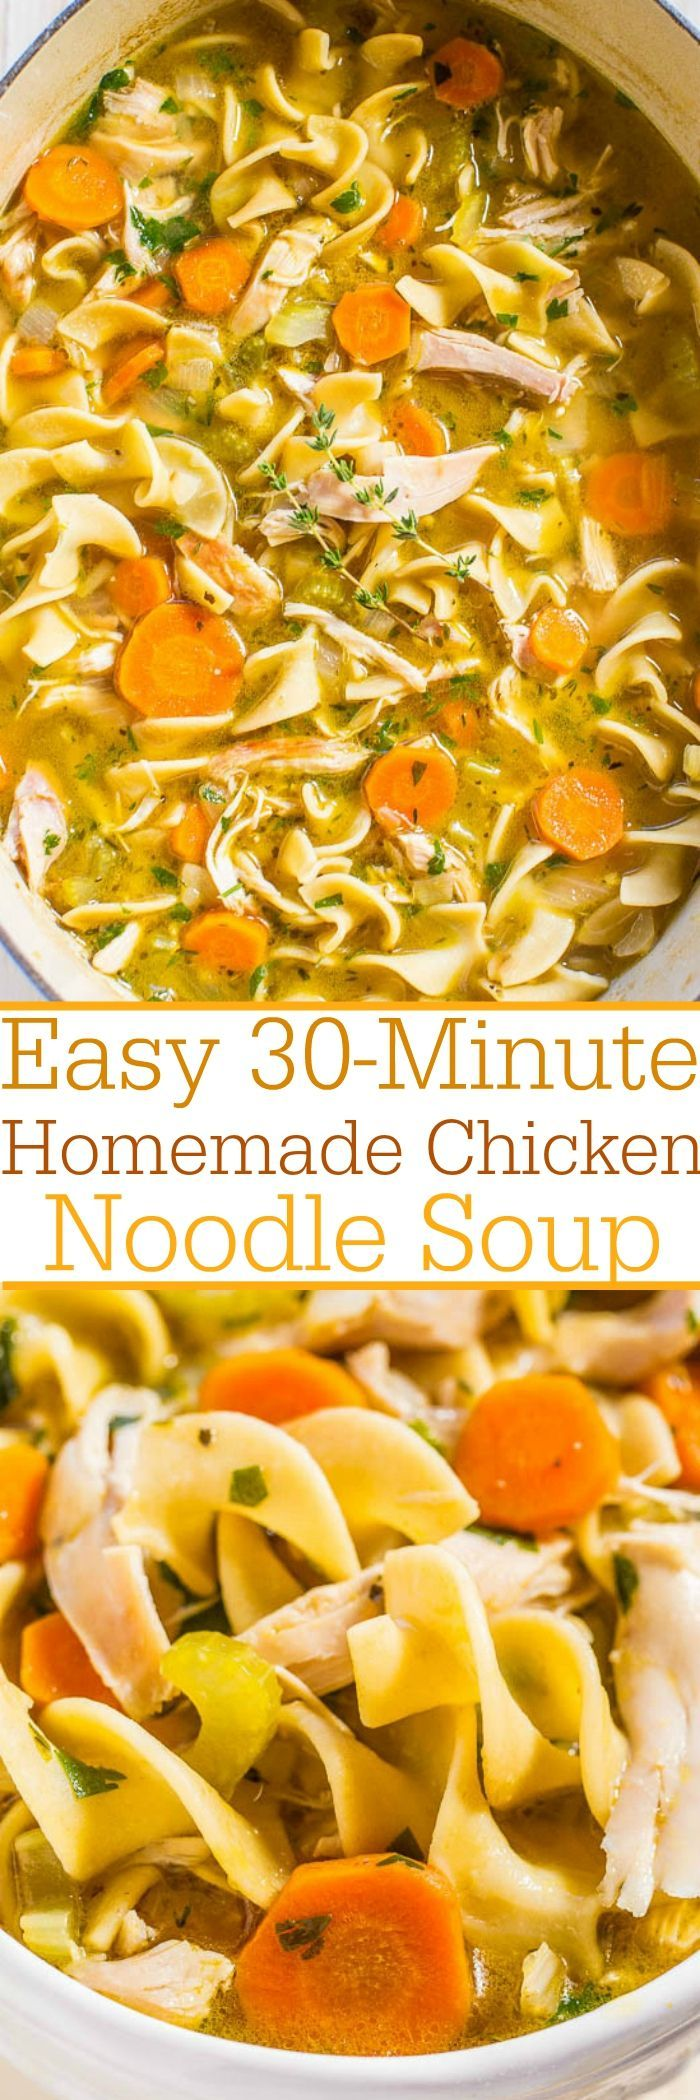 30 Easy Nail Designs For Beginners: Easy 30-Minute Homemade Chicken Noodle Soup